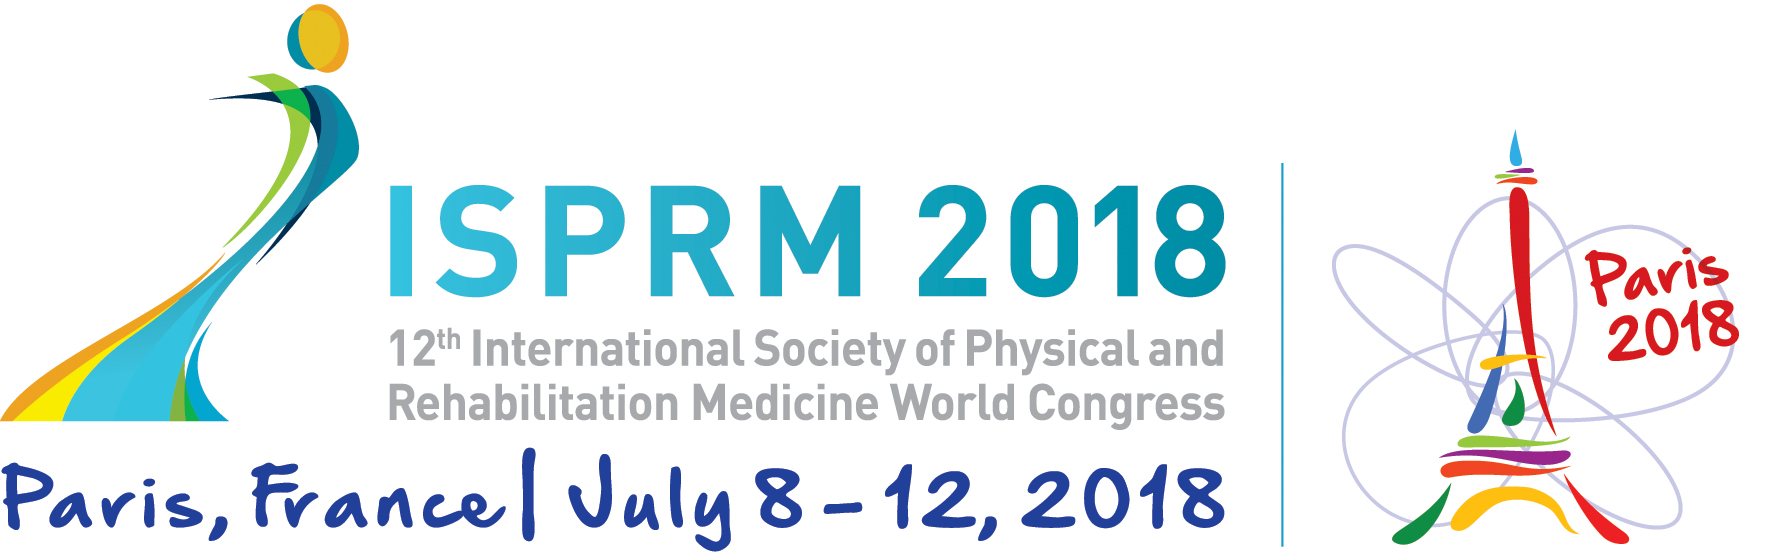 international society of physical and rehabilitation medicine world congress